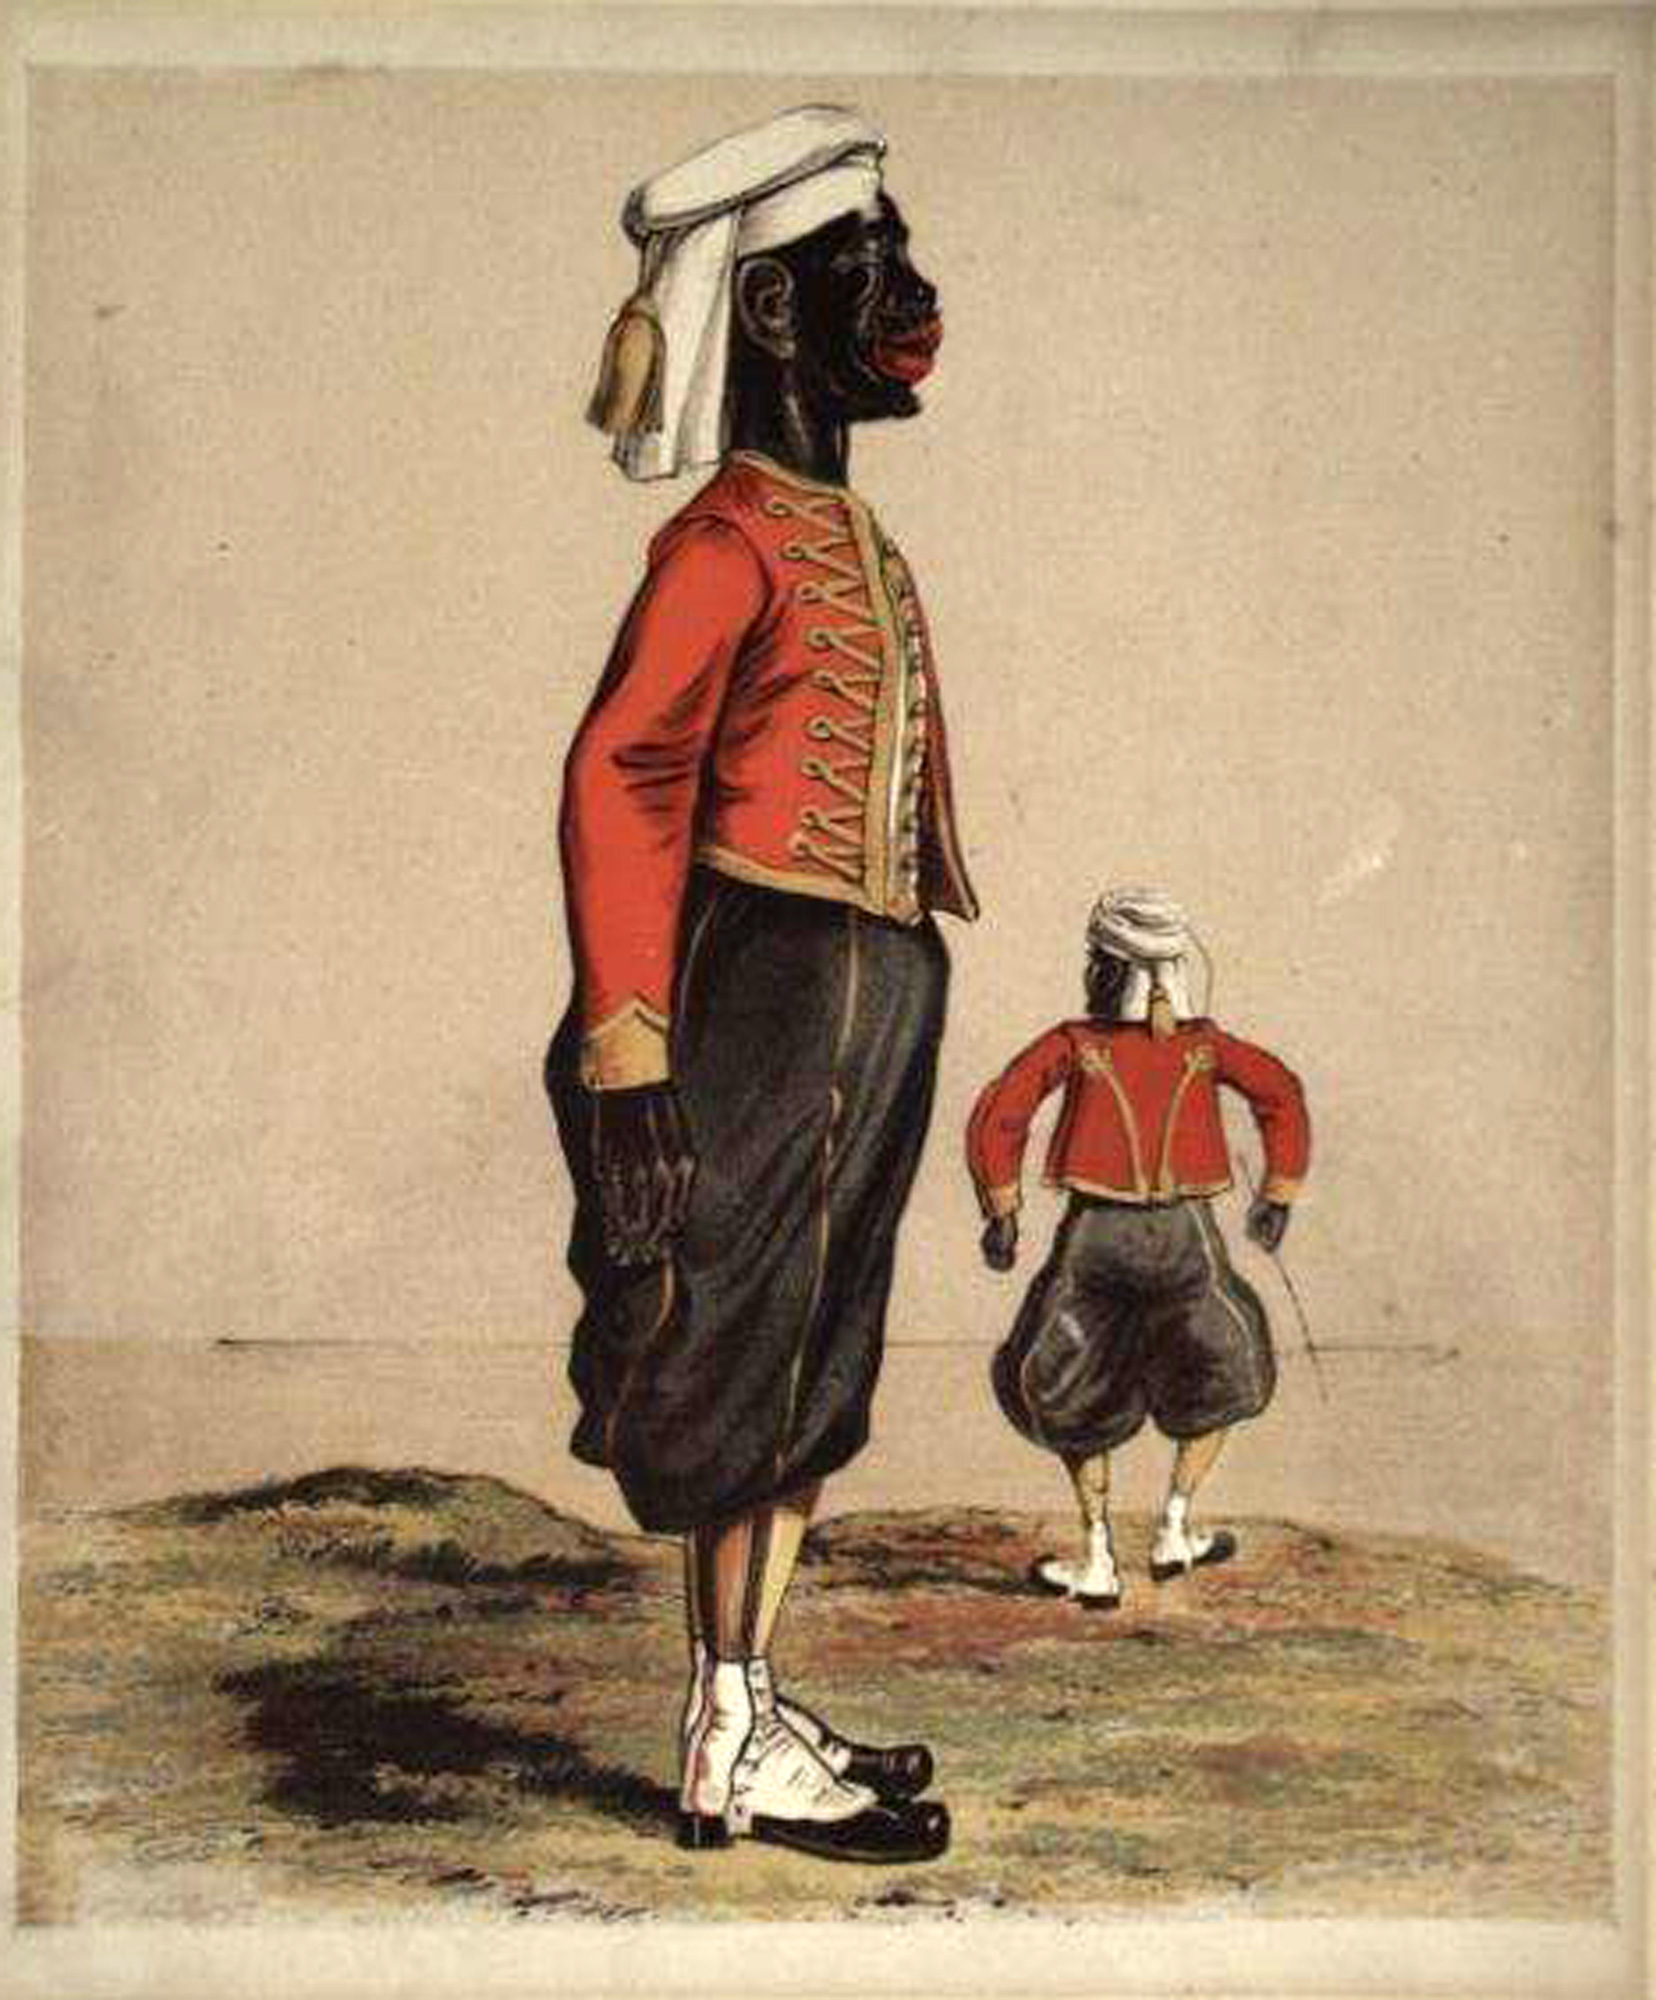 Z is for Zouave